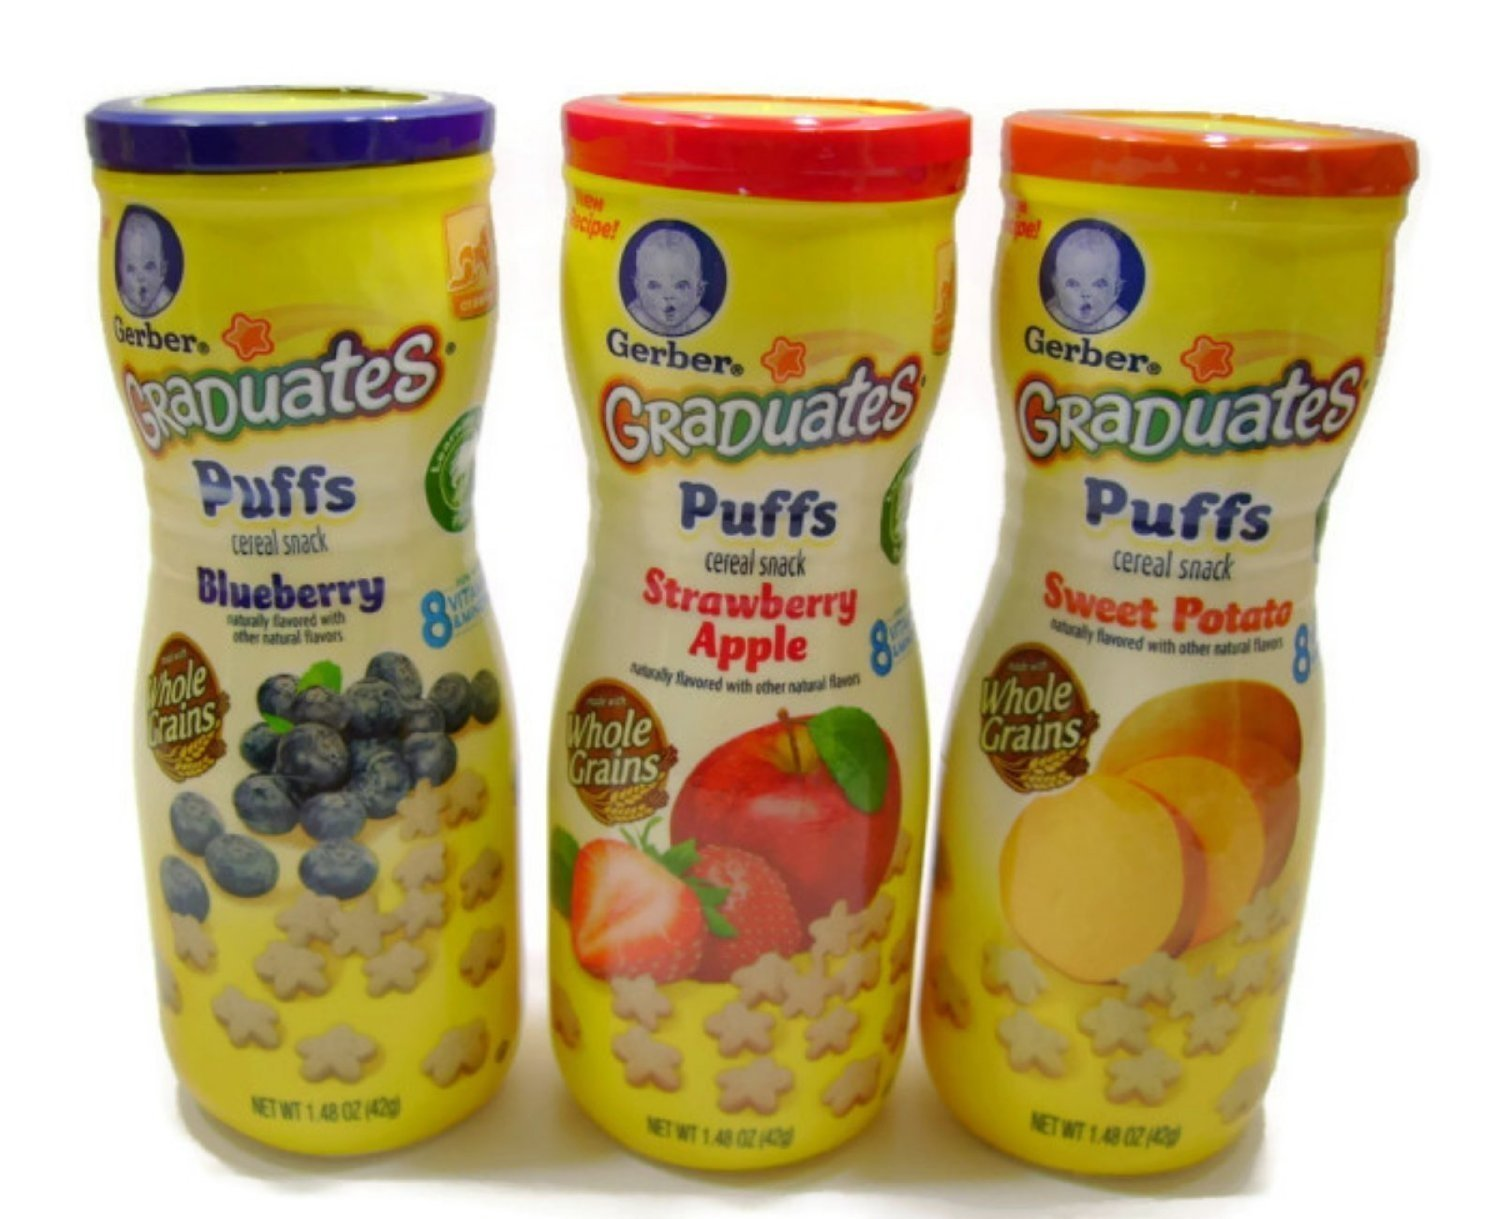 Gerber Graduates Low price Puffs Cereal Snack Max 44% OFF - Pack Blueberry St Variety